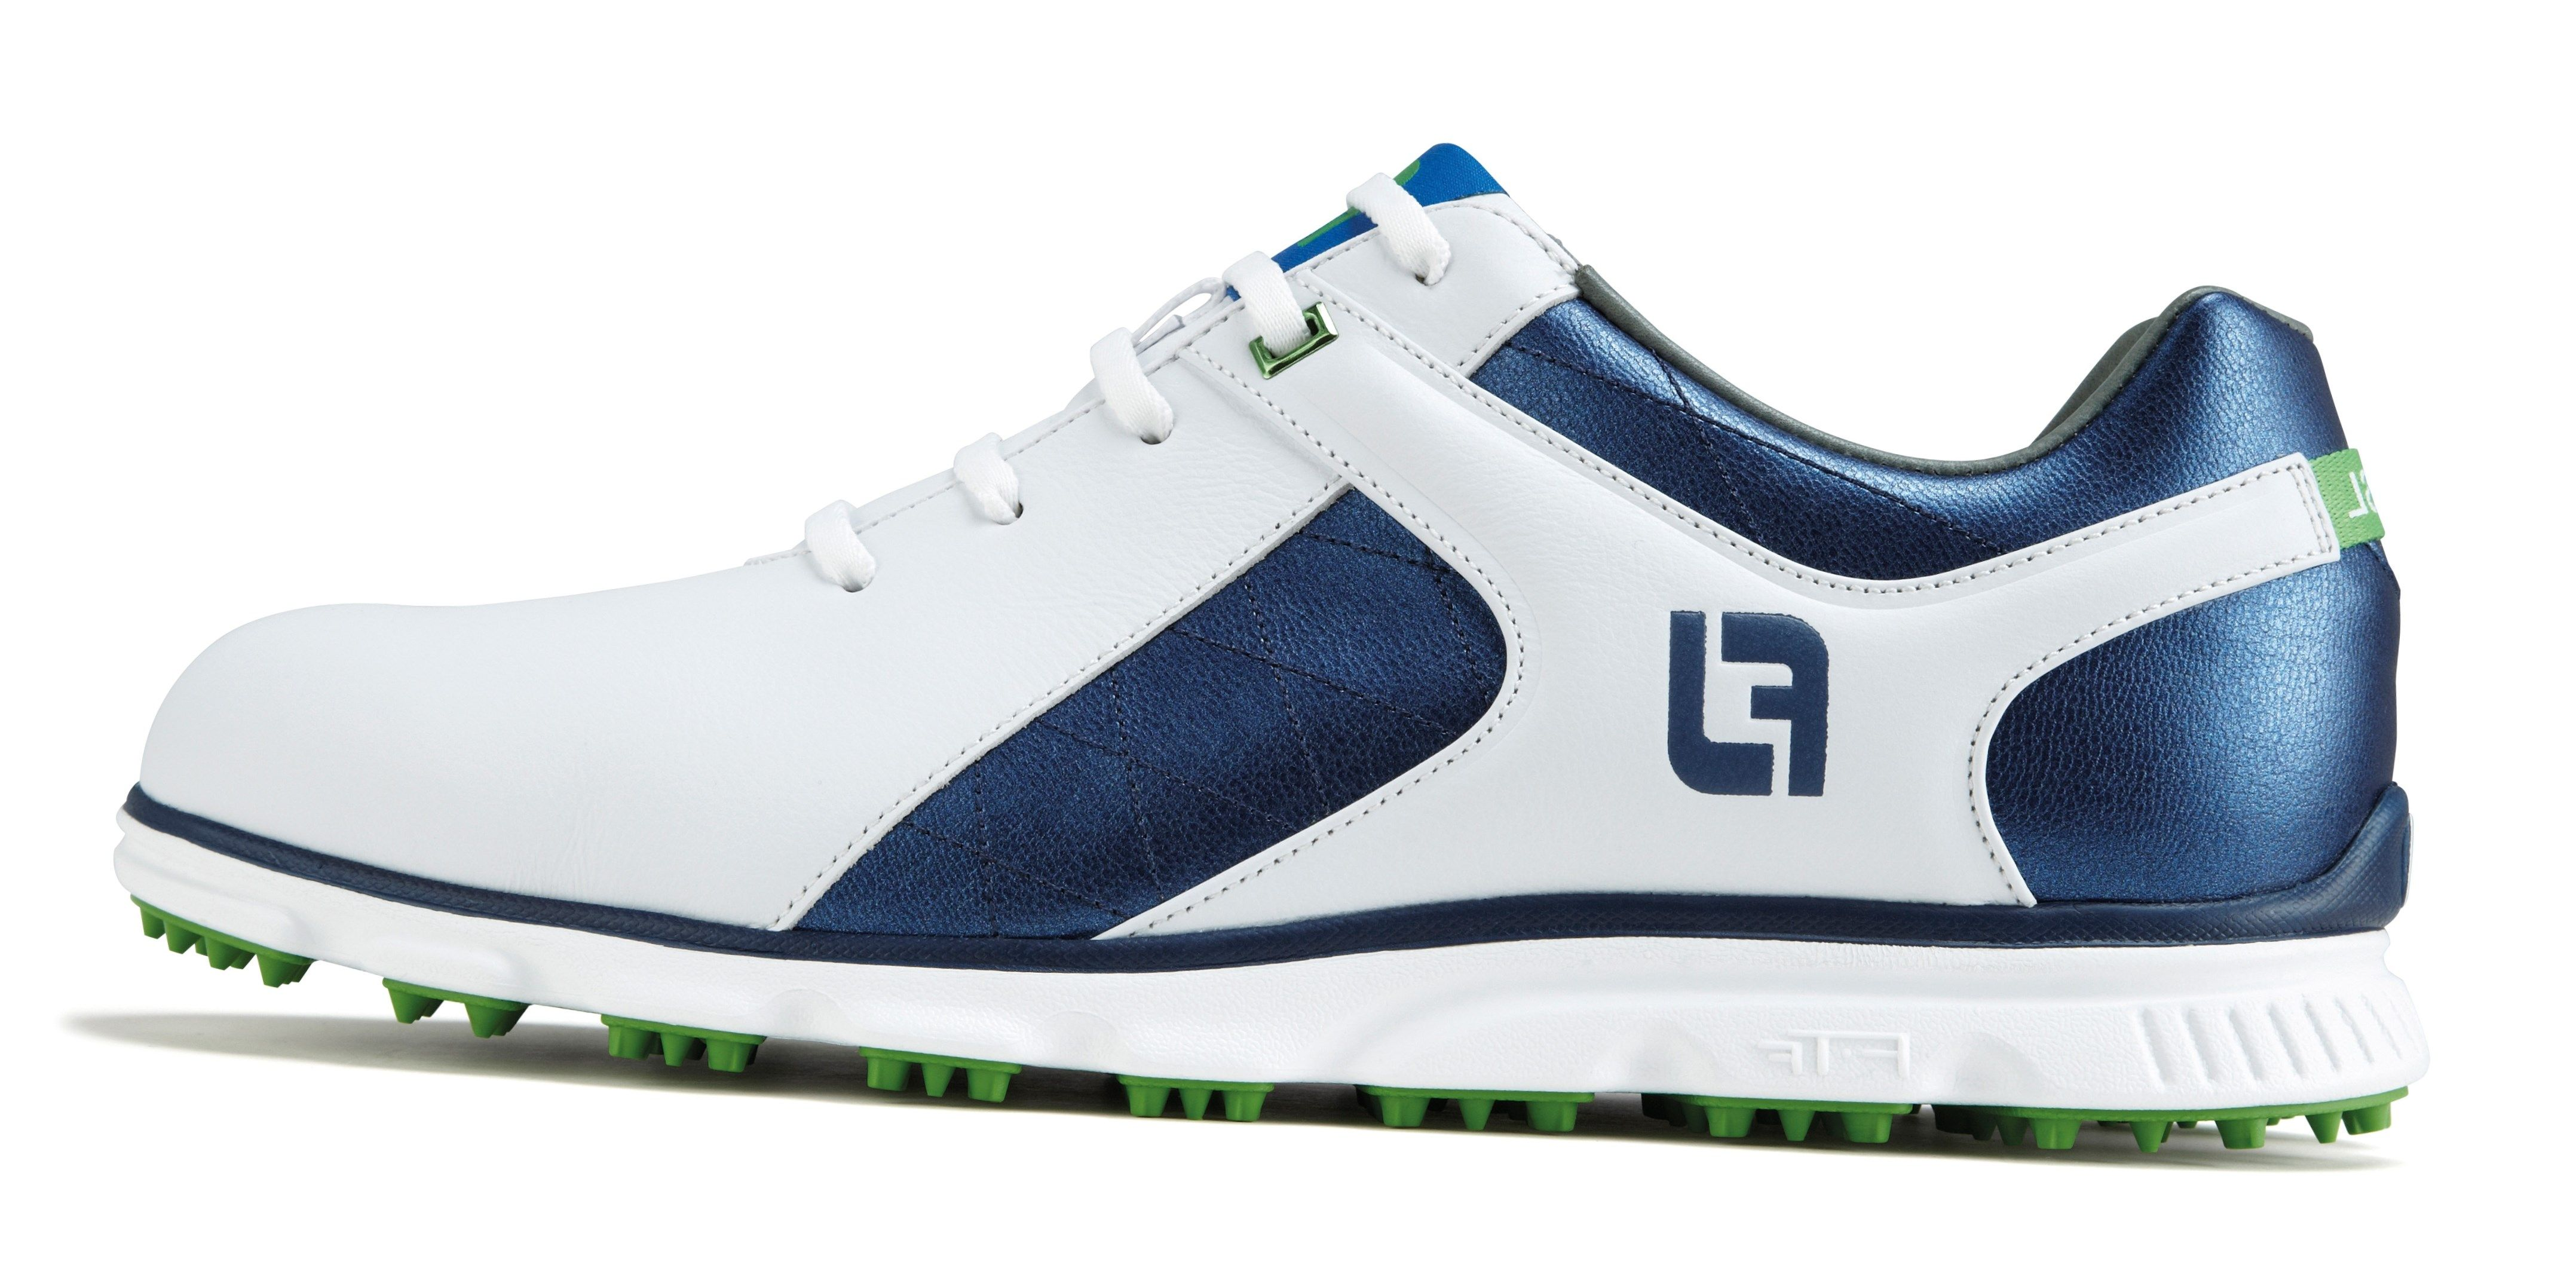 Best spikeless golf shoes 2017 - Top Picks and In-depth ...